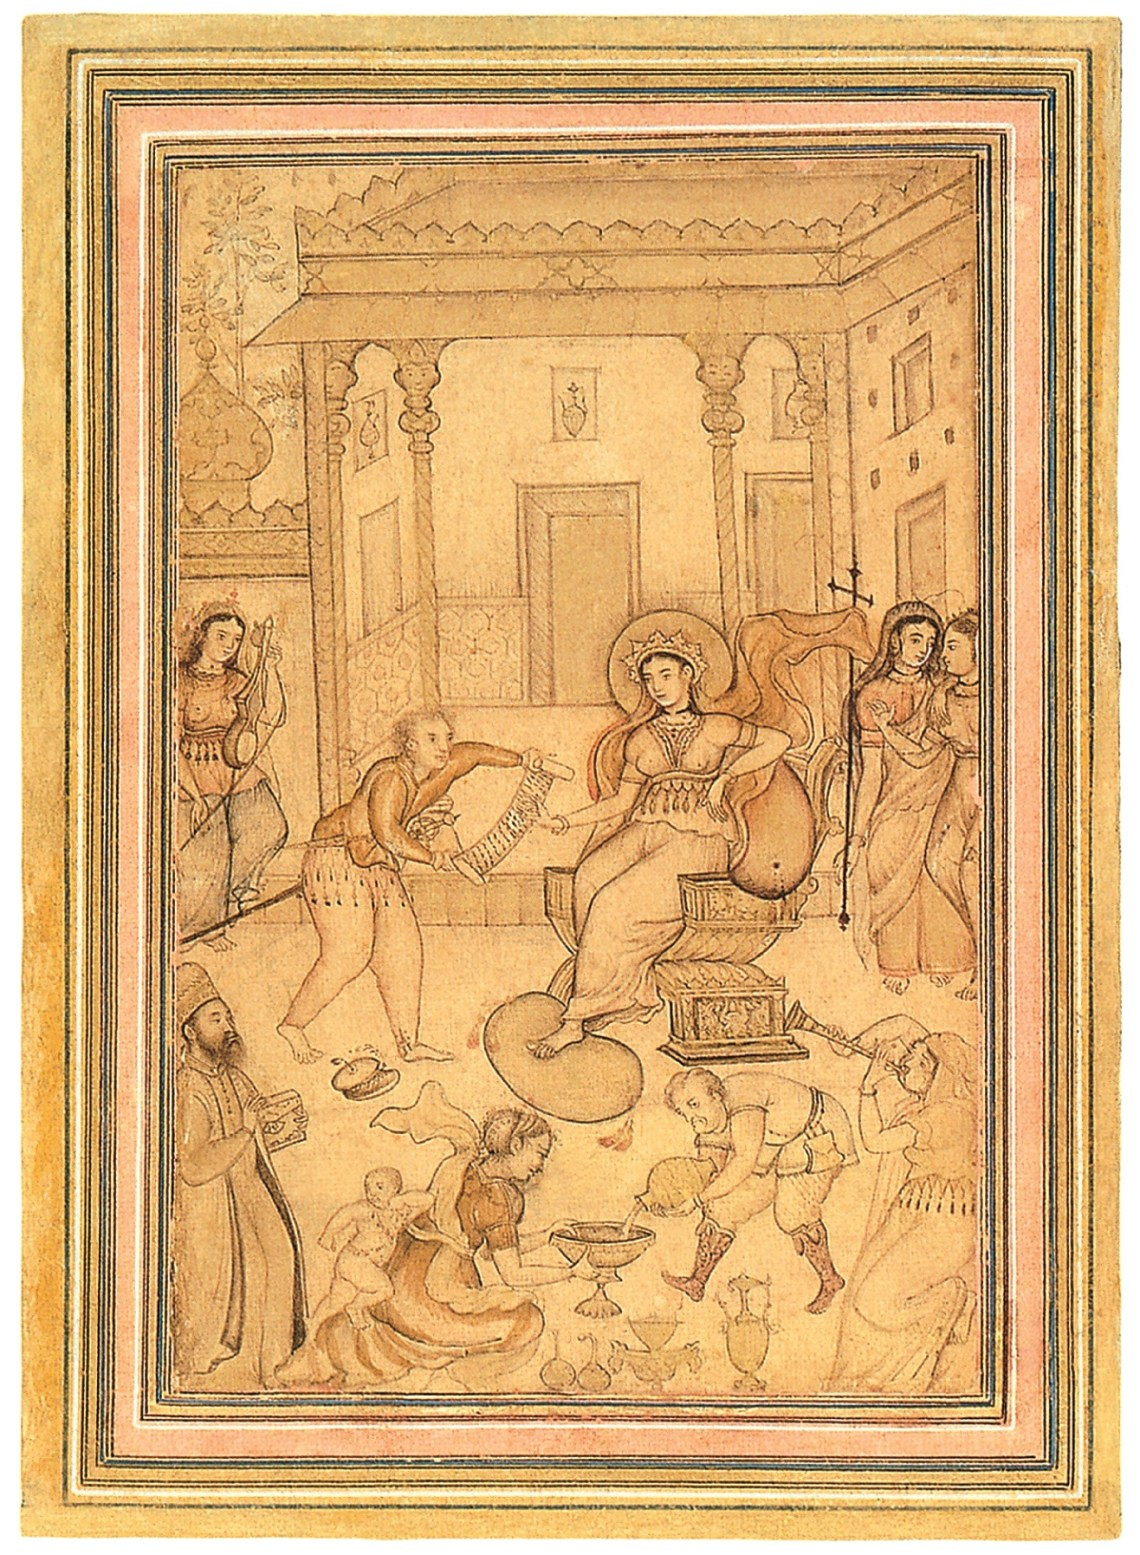 Anónimo, Escena de corte en Europa, 1600. Aguada y tinta, 33,5 x 20,8 cm. Virginia Museum of Fine Arts, Richmond, Virginia.